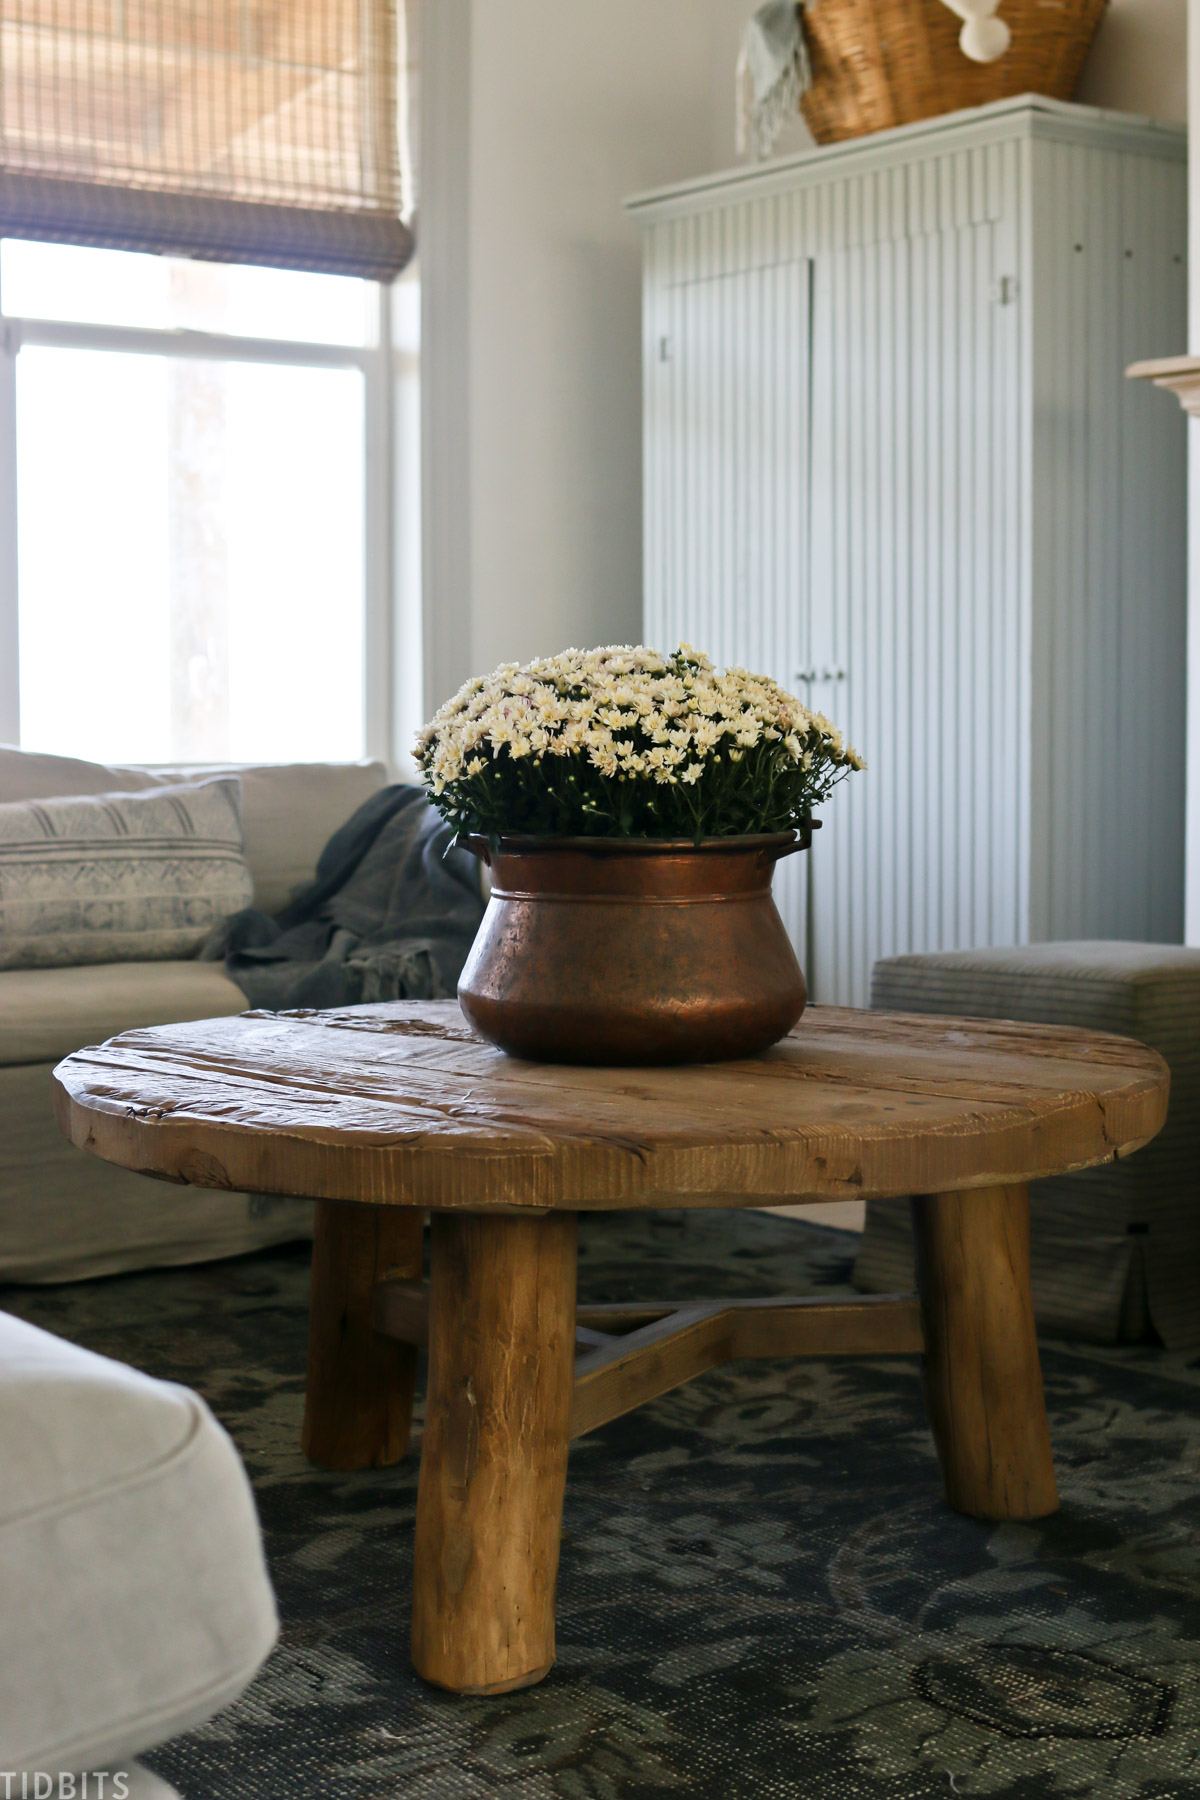 Vintage copper vessel with live mums on a wood coffee table for easy early fall decor.